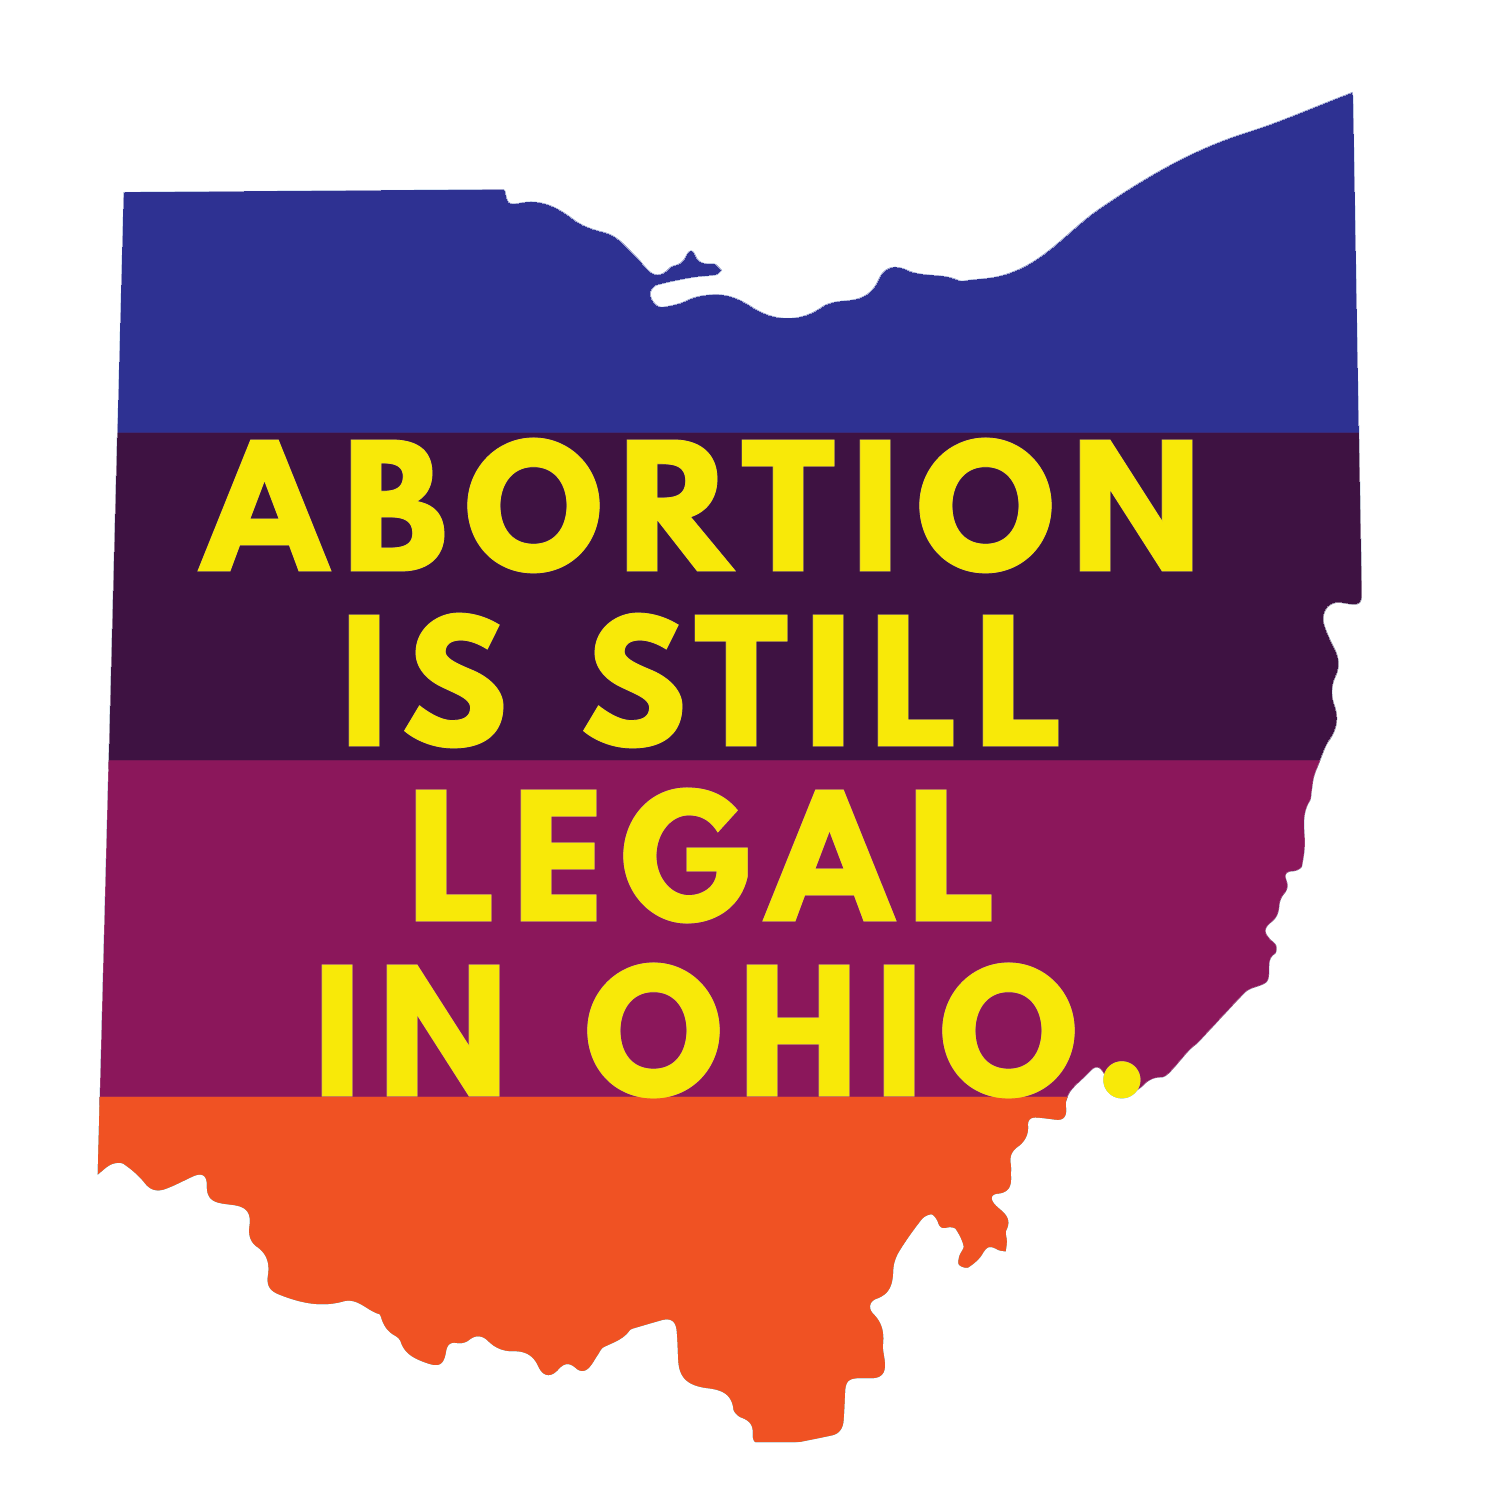 abortion_is_still_legal_in_ohio.png